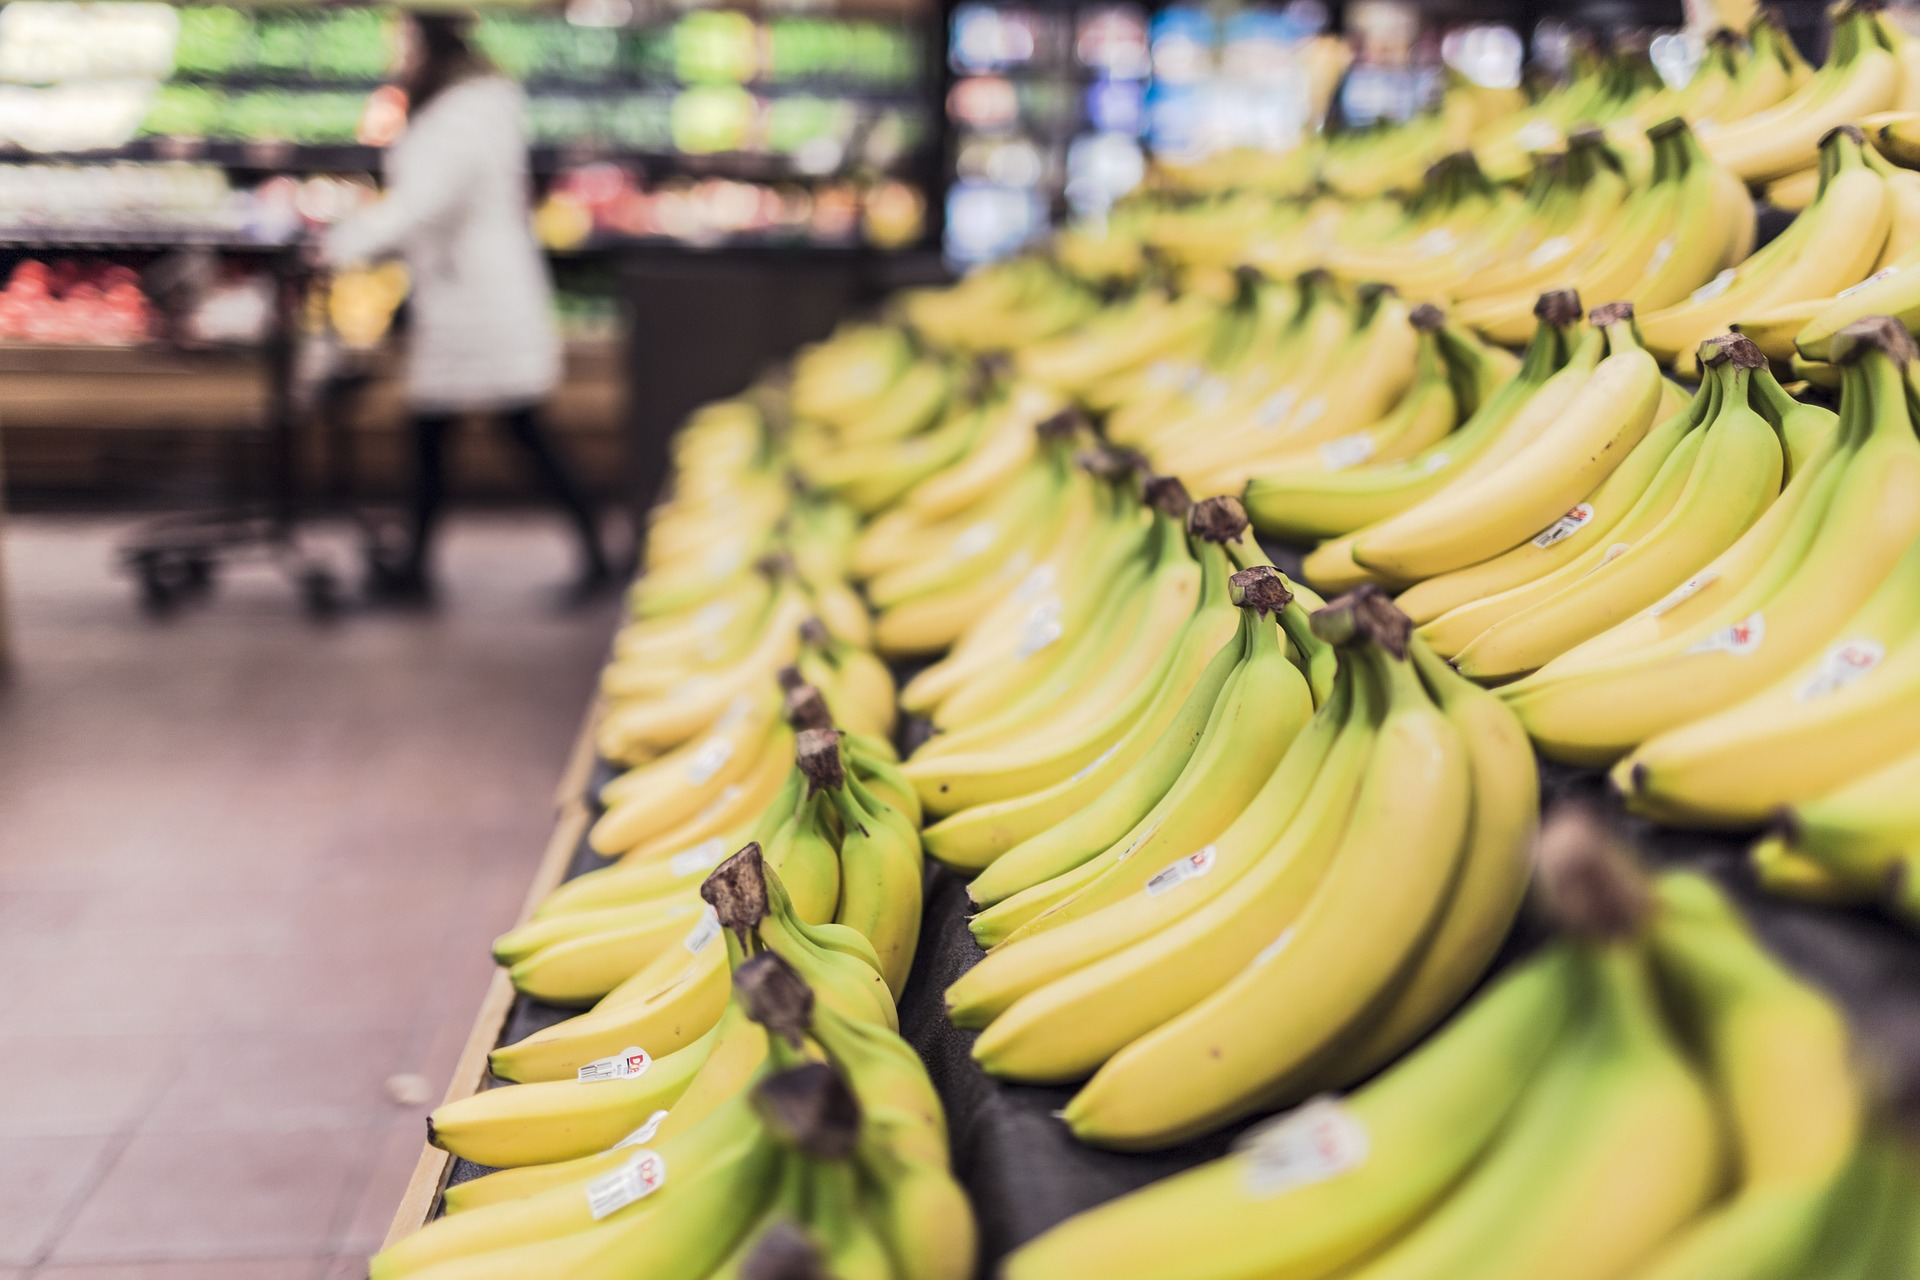 Get savvy with supermarket shopping and learn to save money